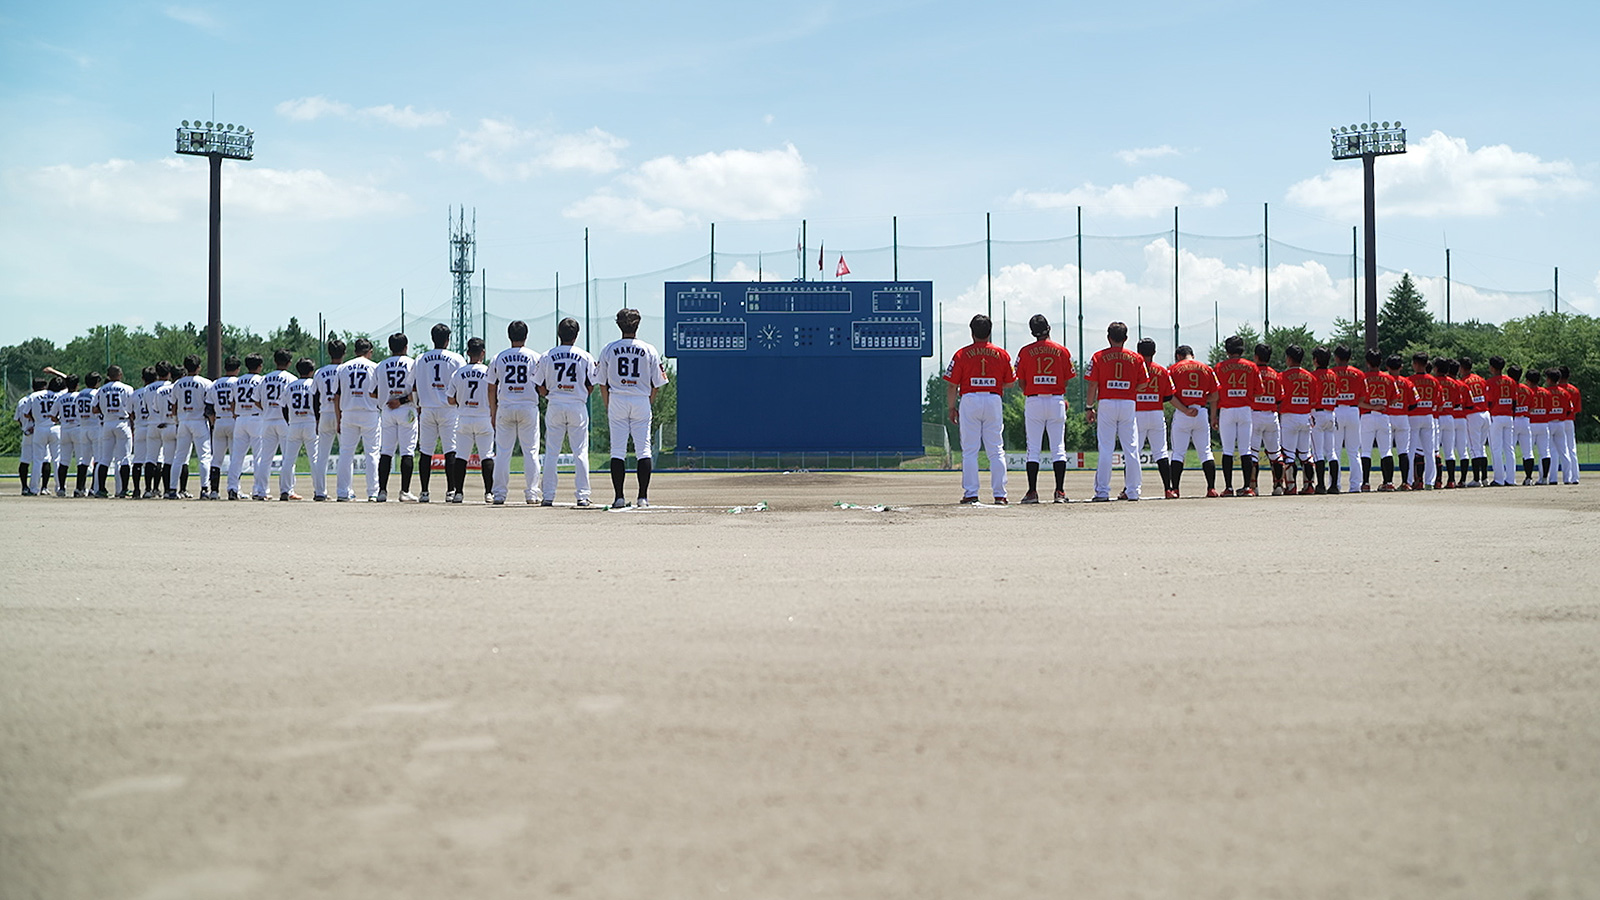 The Red Hopes Fukushima prepare to play a game against a team from Gunma at a stadium in Izumizaki village in Fukushima prefecture.